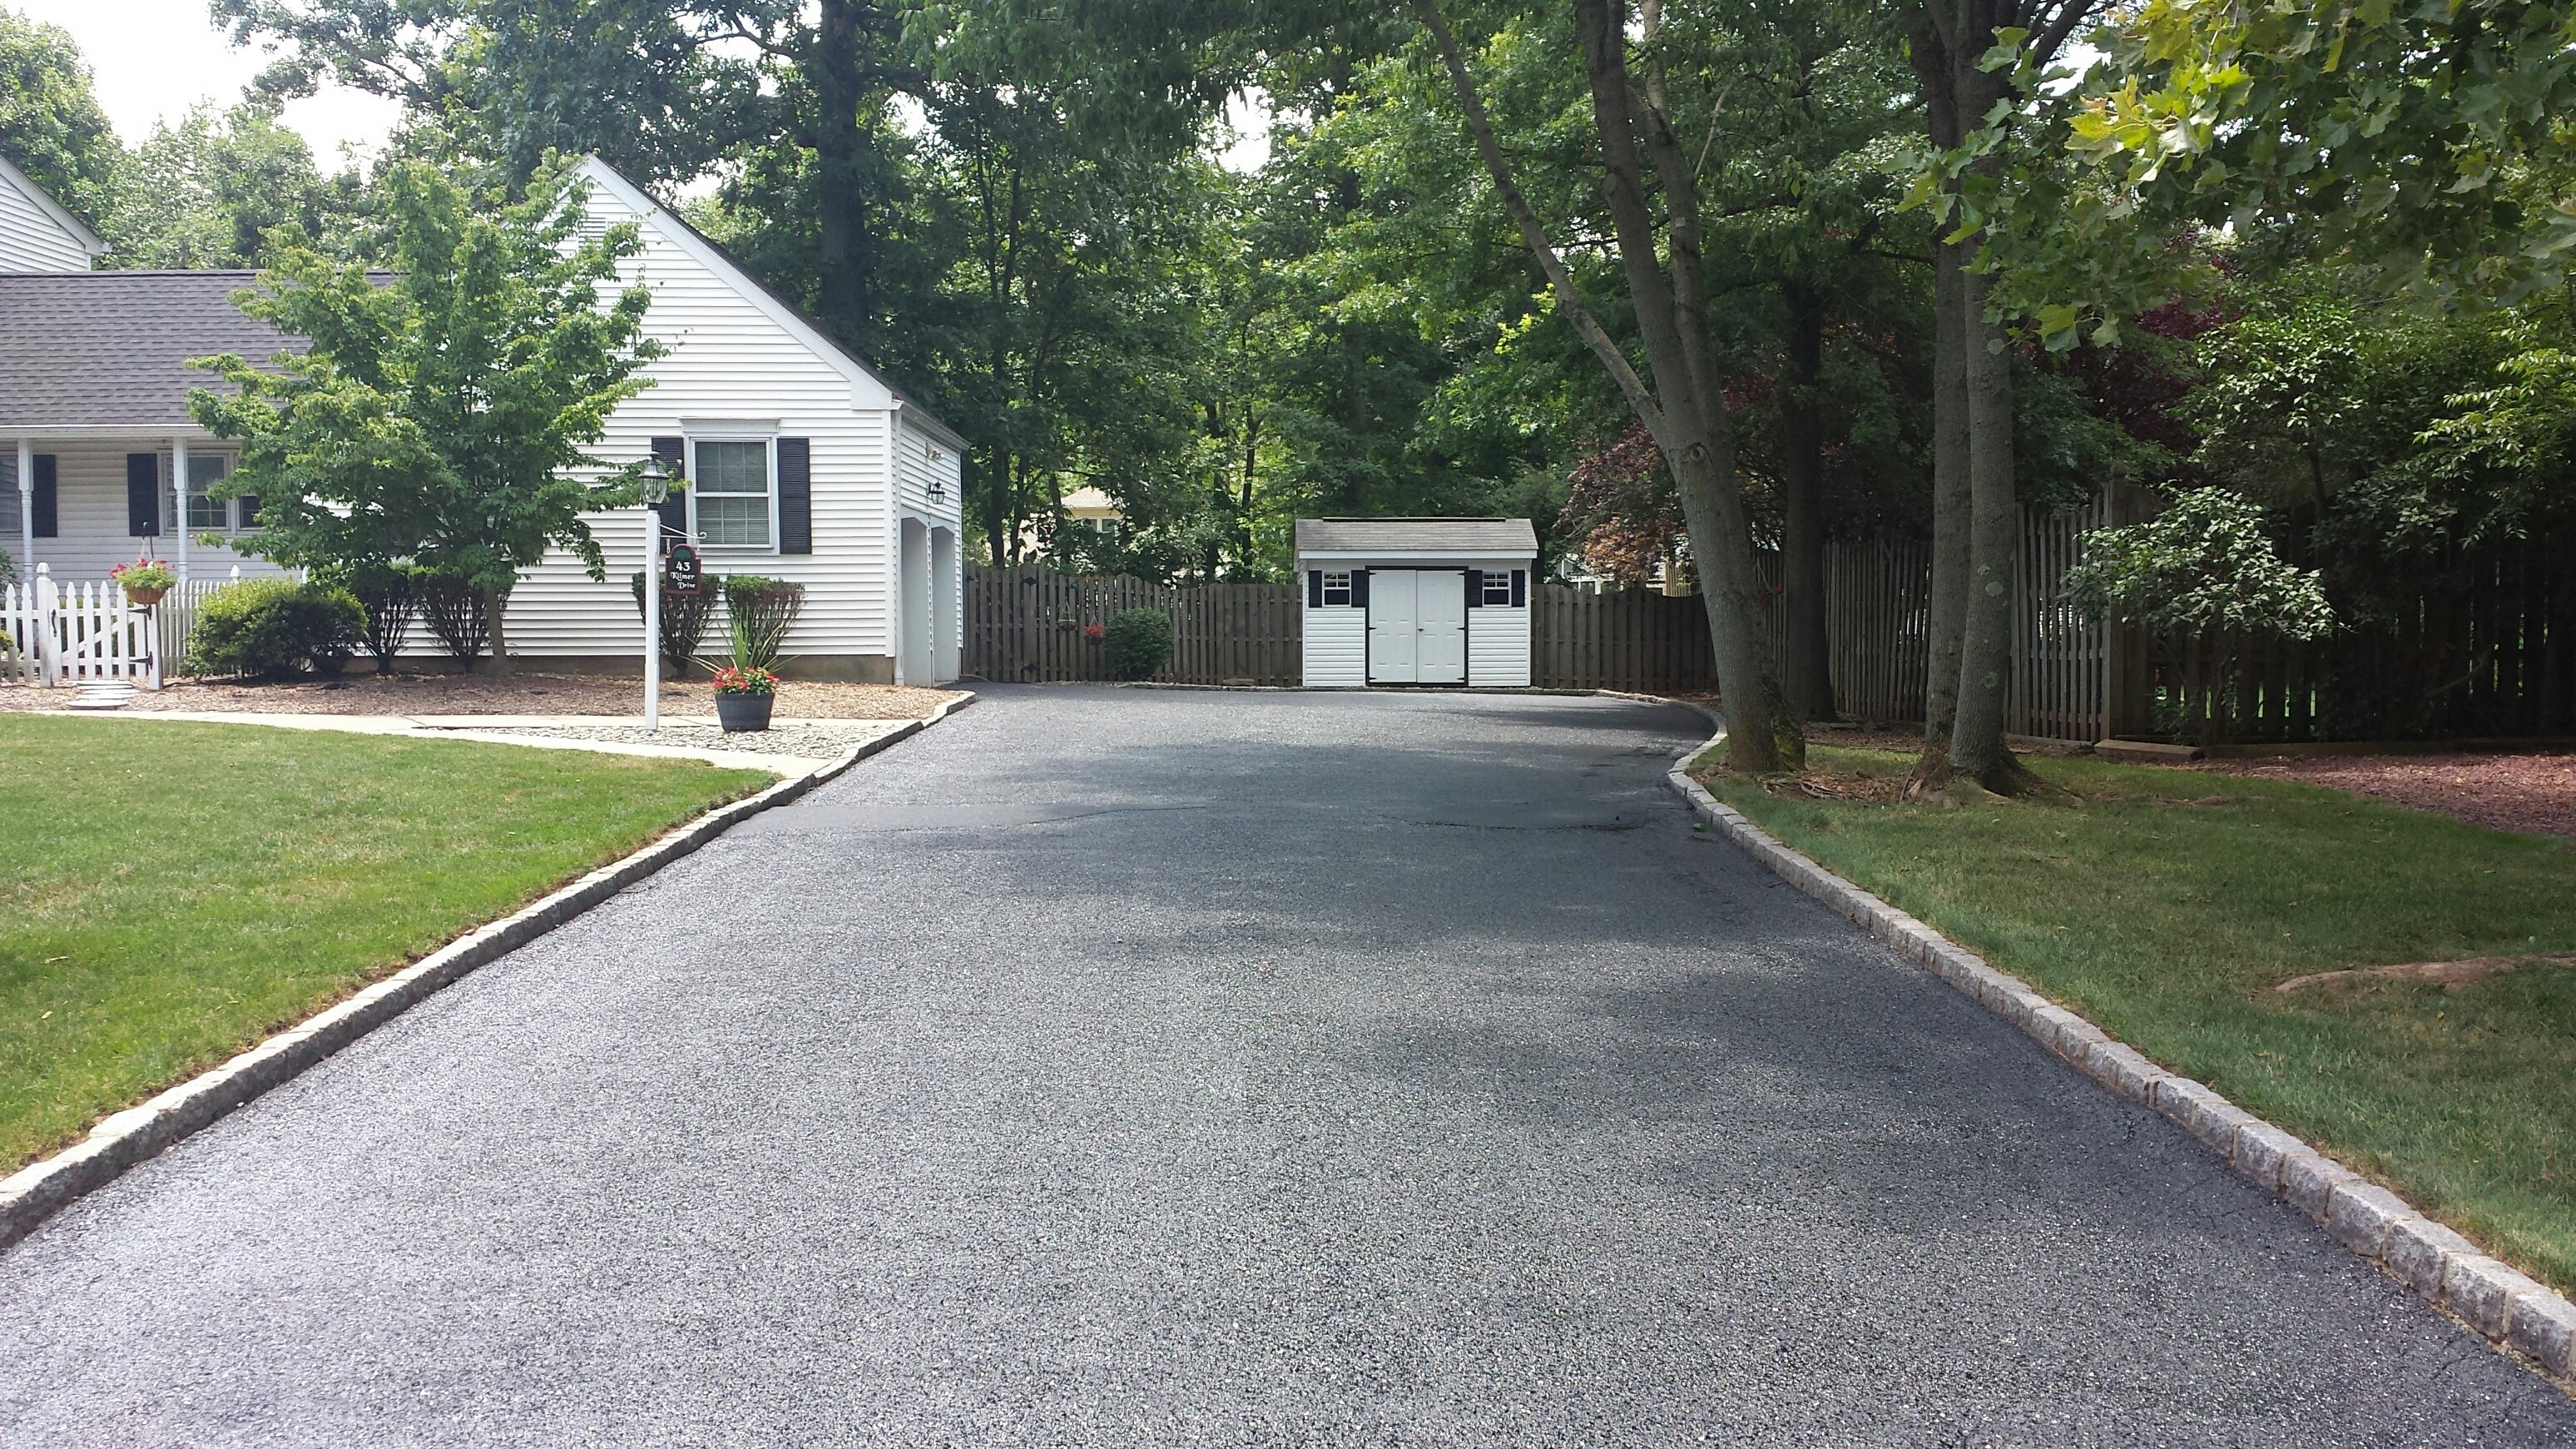 2018 asphalt paving costs install resurface replace prices photo courtesy of productive asphalt paving in ringoes nj solutioingenieria